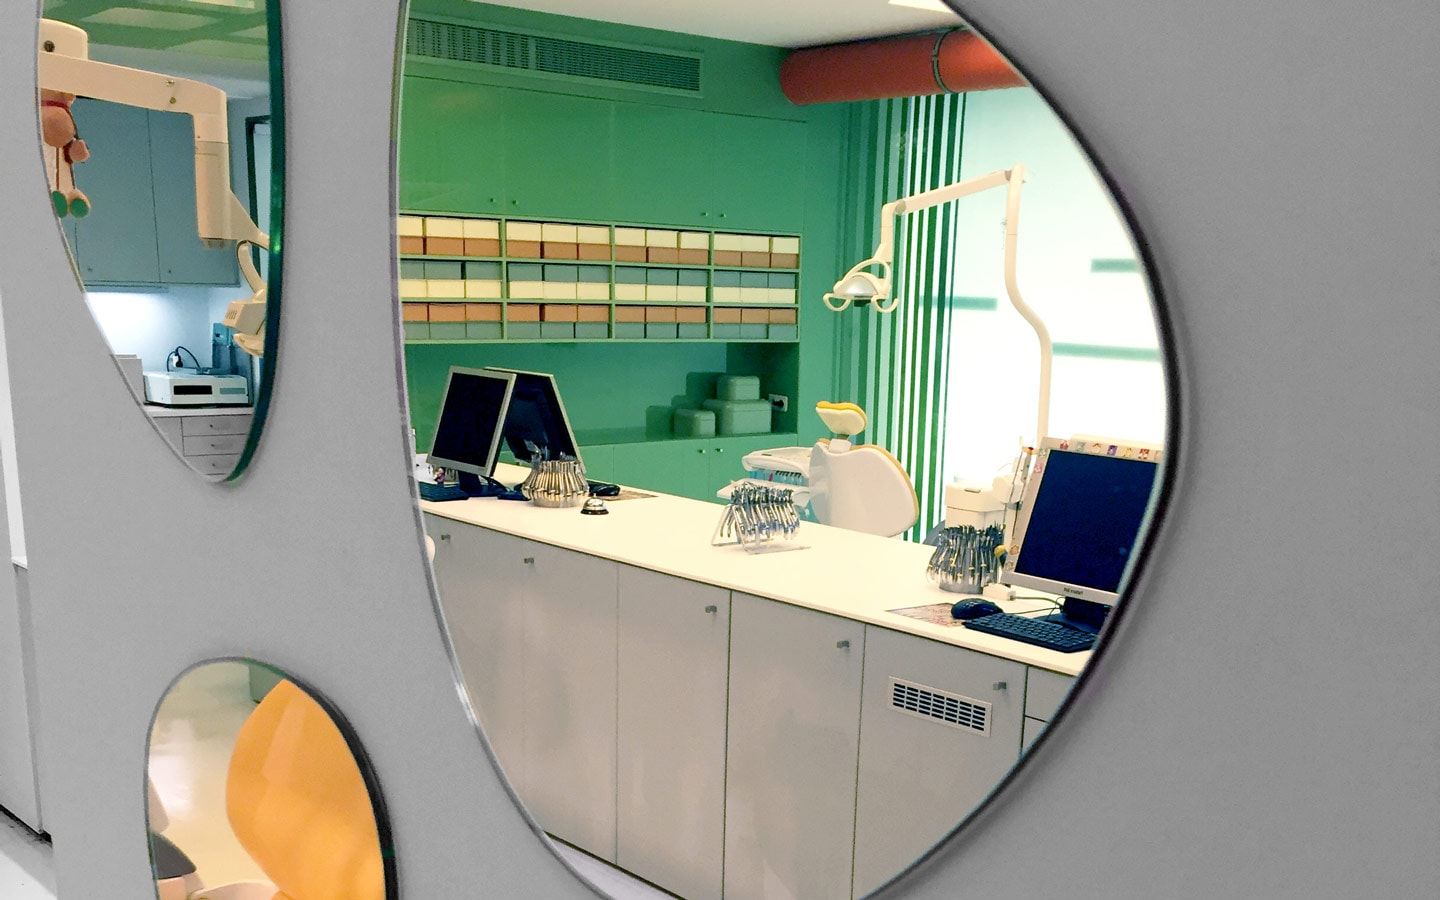 Desk, computers & light reflected in mirror in the Sanoudos Kapakian orthodontic practice in Glyfada